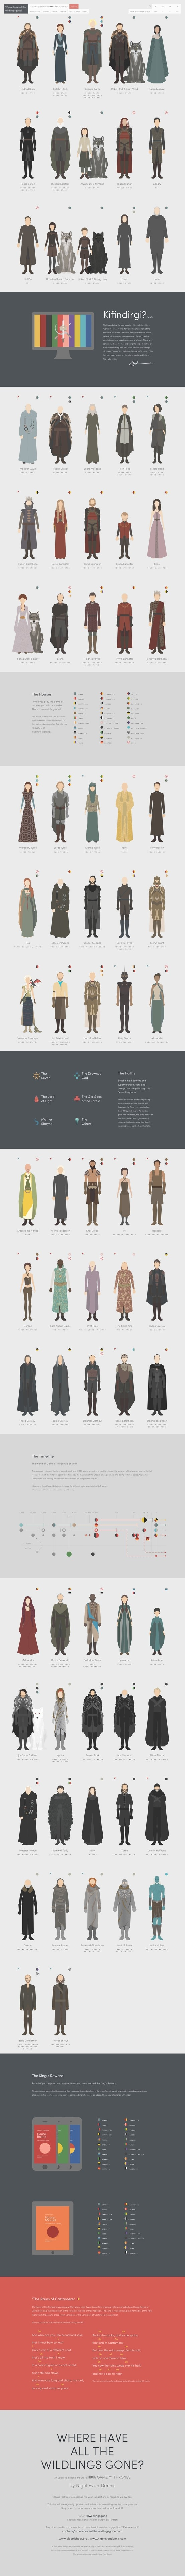 Game of Thrones website infographic by Nigel Evan Dennis....keep clicking, it gets big enough to read.